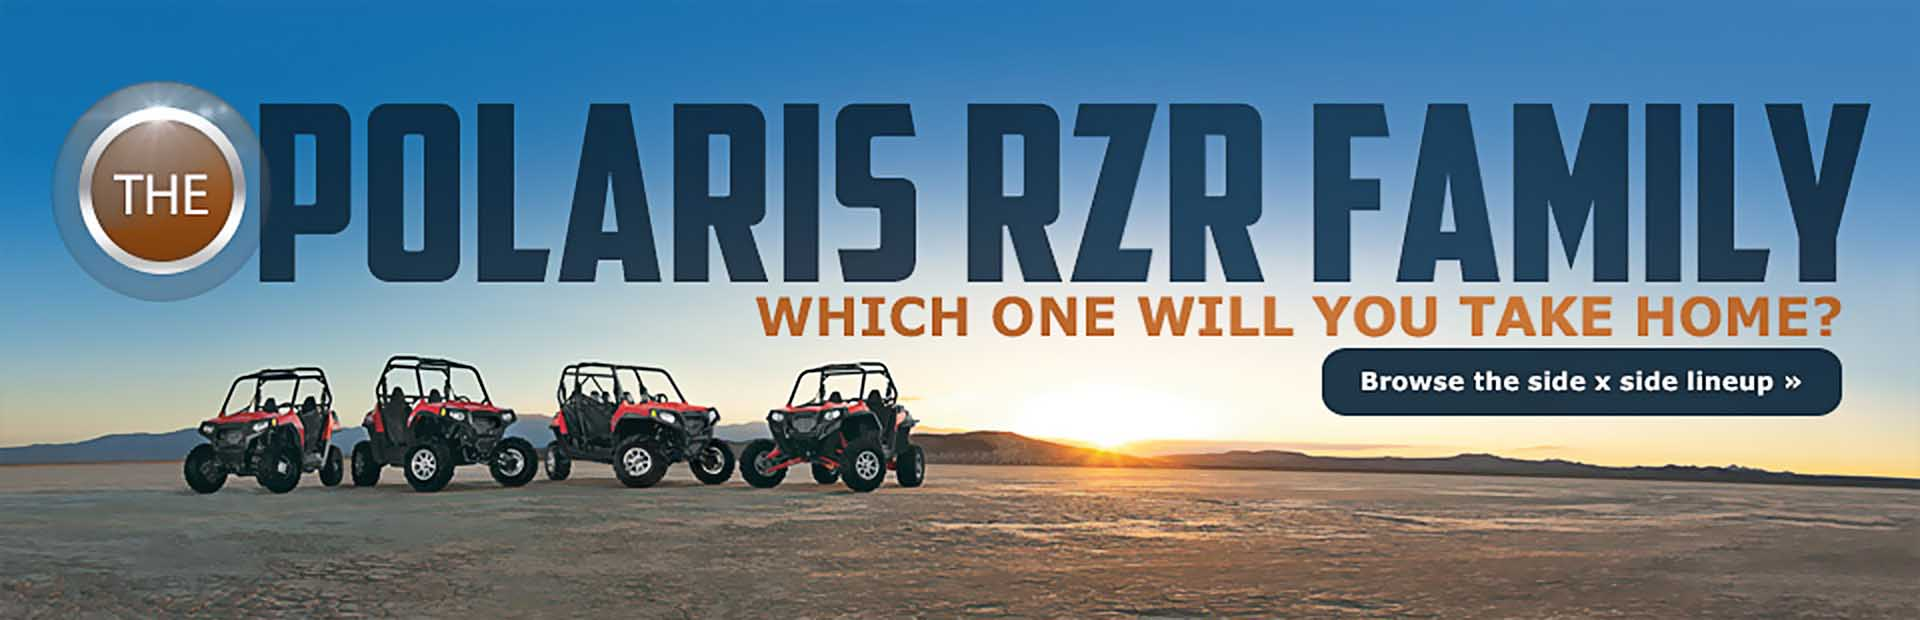 Click here to browse Polaris RZR side x sides!